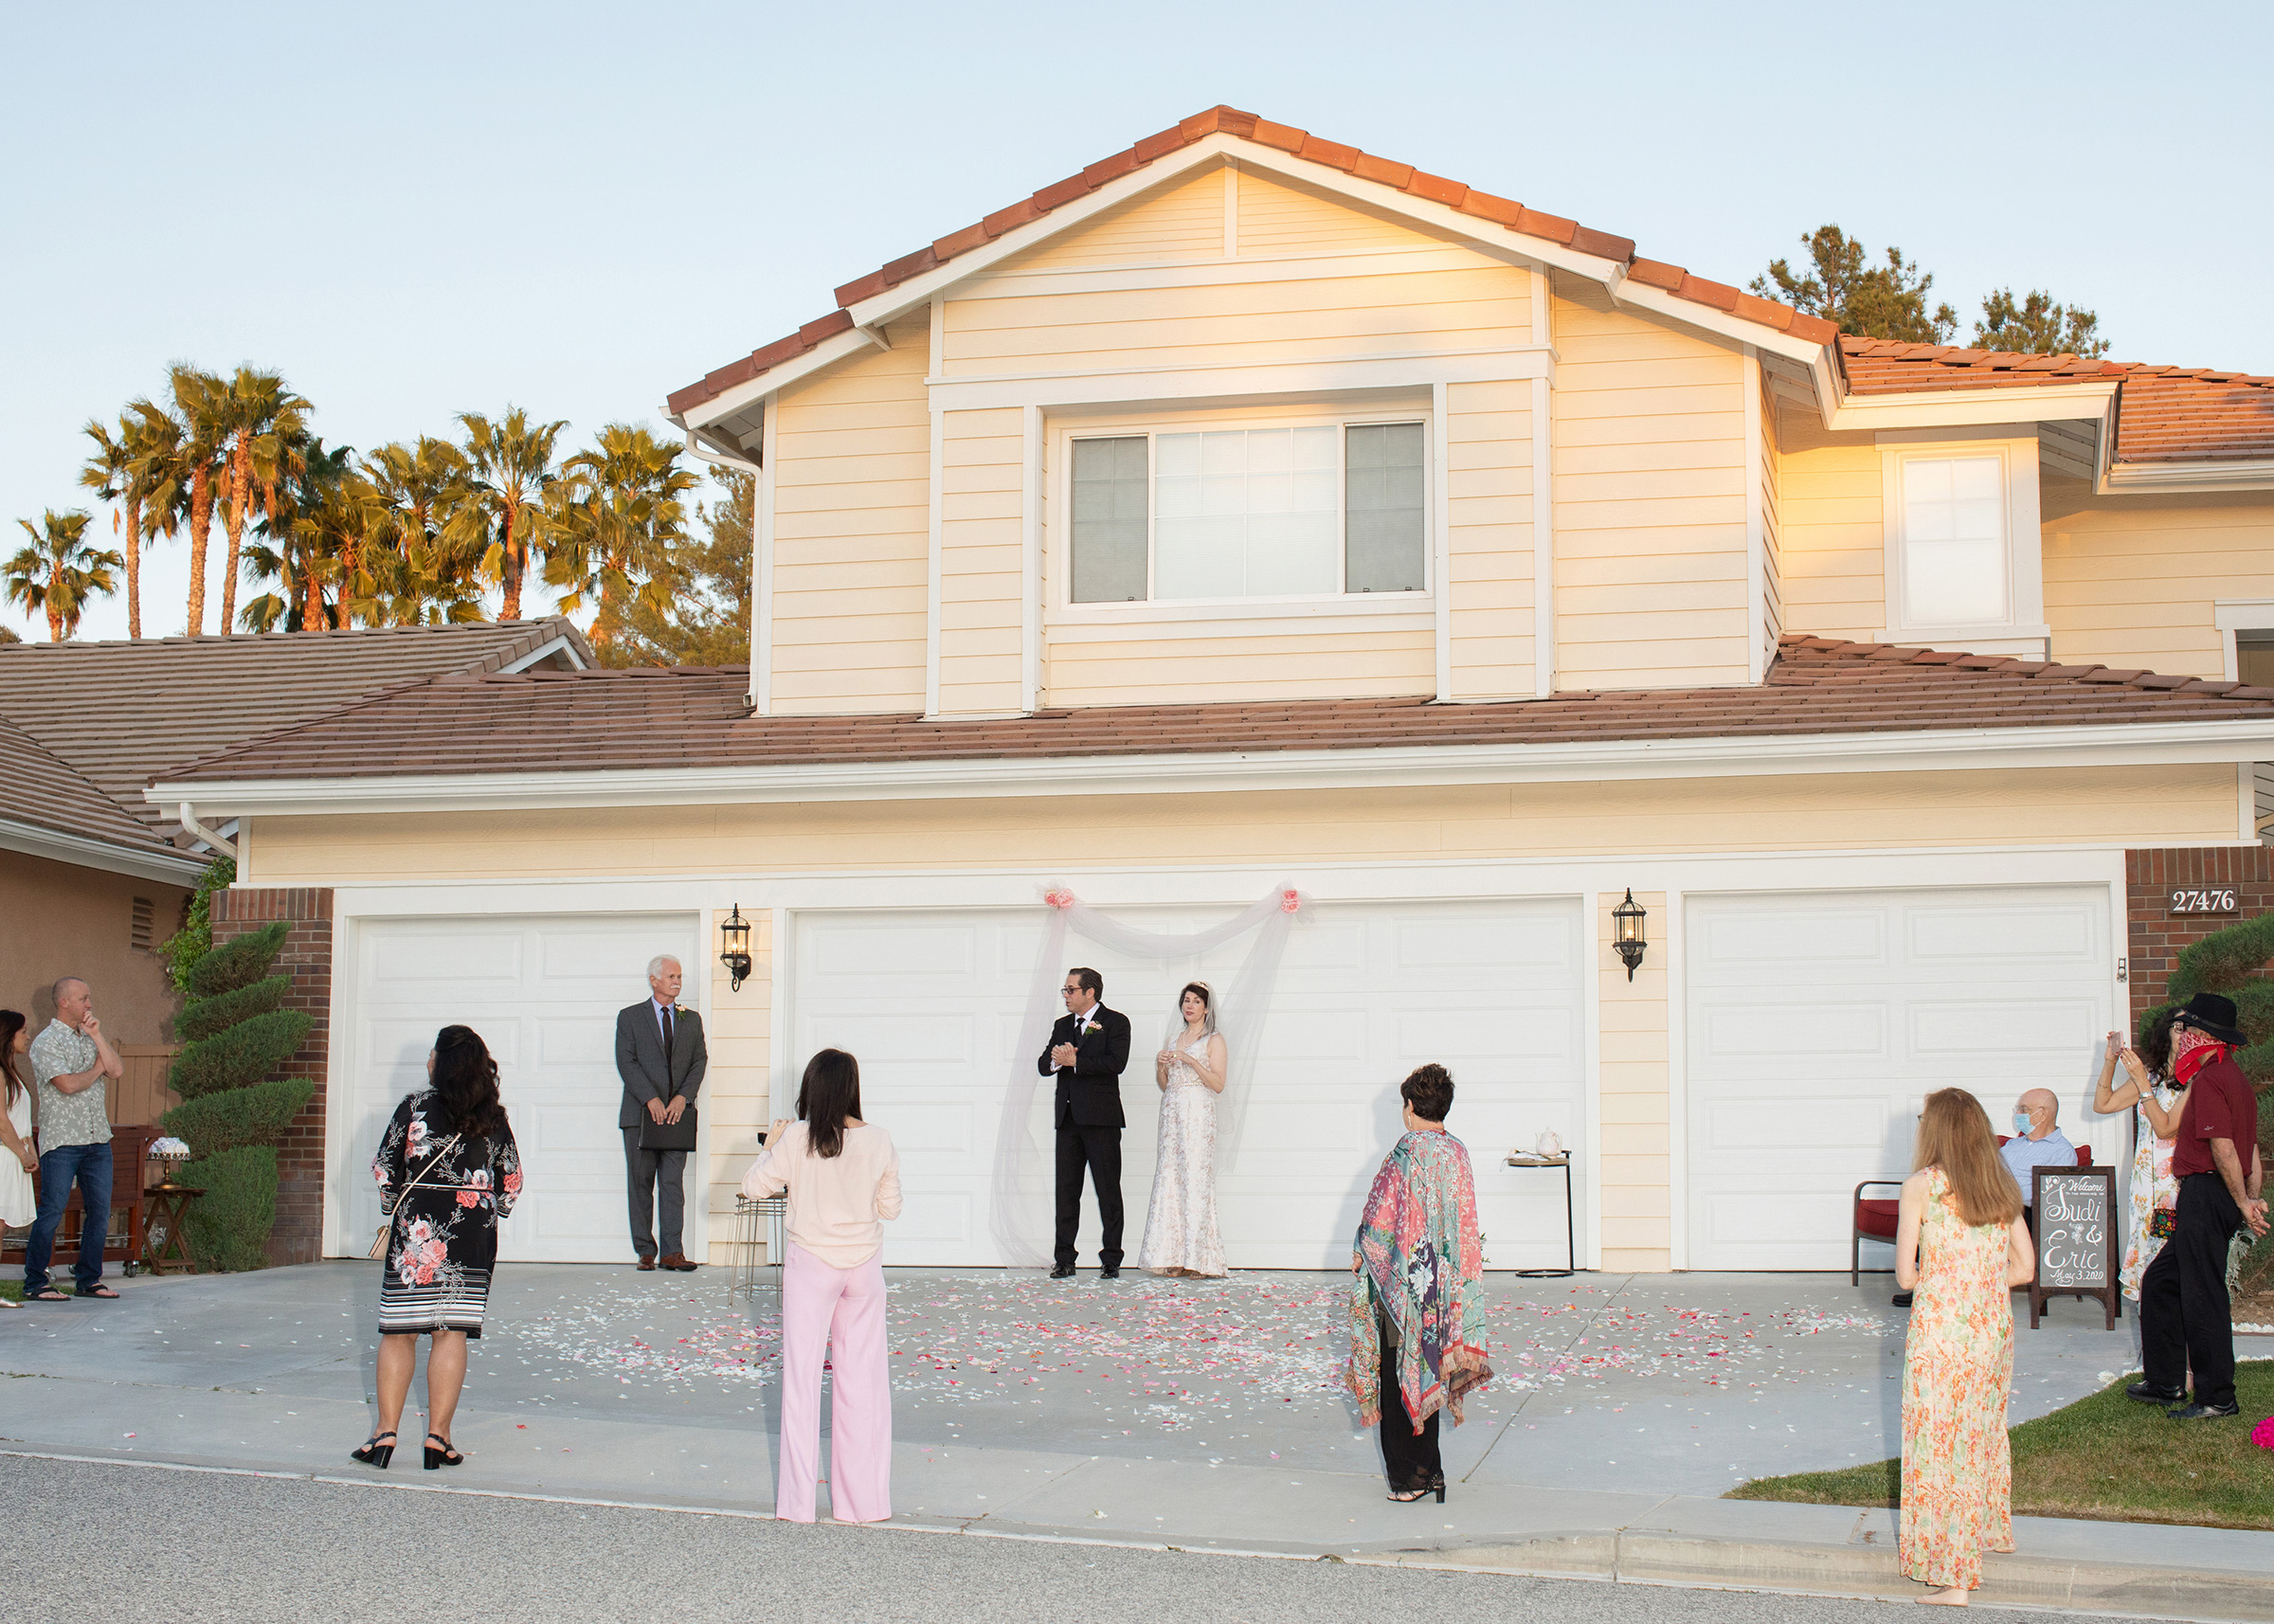 After pushing their wedding date back a few times due to pandemic concerns, Judi and Eric finally decided to move forward with an intimate wedding in front of their home in Santa Clarita, Calif., in May. Judi's main concern was that her elderly father, who is undergoing treatment, might not make it to their new date in 2021 and it was extremely important to her that he was there to walk her down the aisle. Everything fell into place perfectly, the photographer recalled. Their wedding officiant, who lived across the street, and a few neighbors and close friends joined for the small ceremony in their driveway.